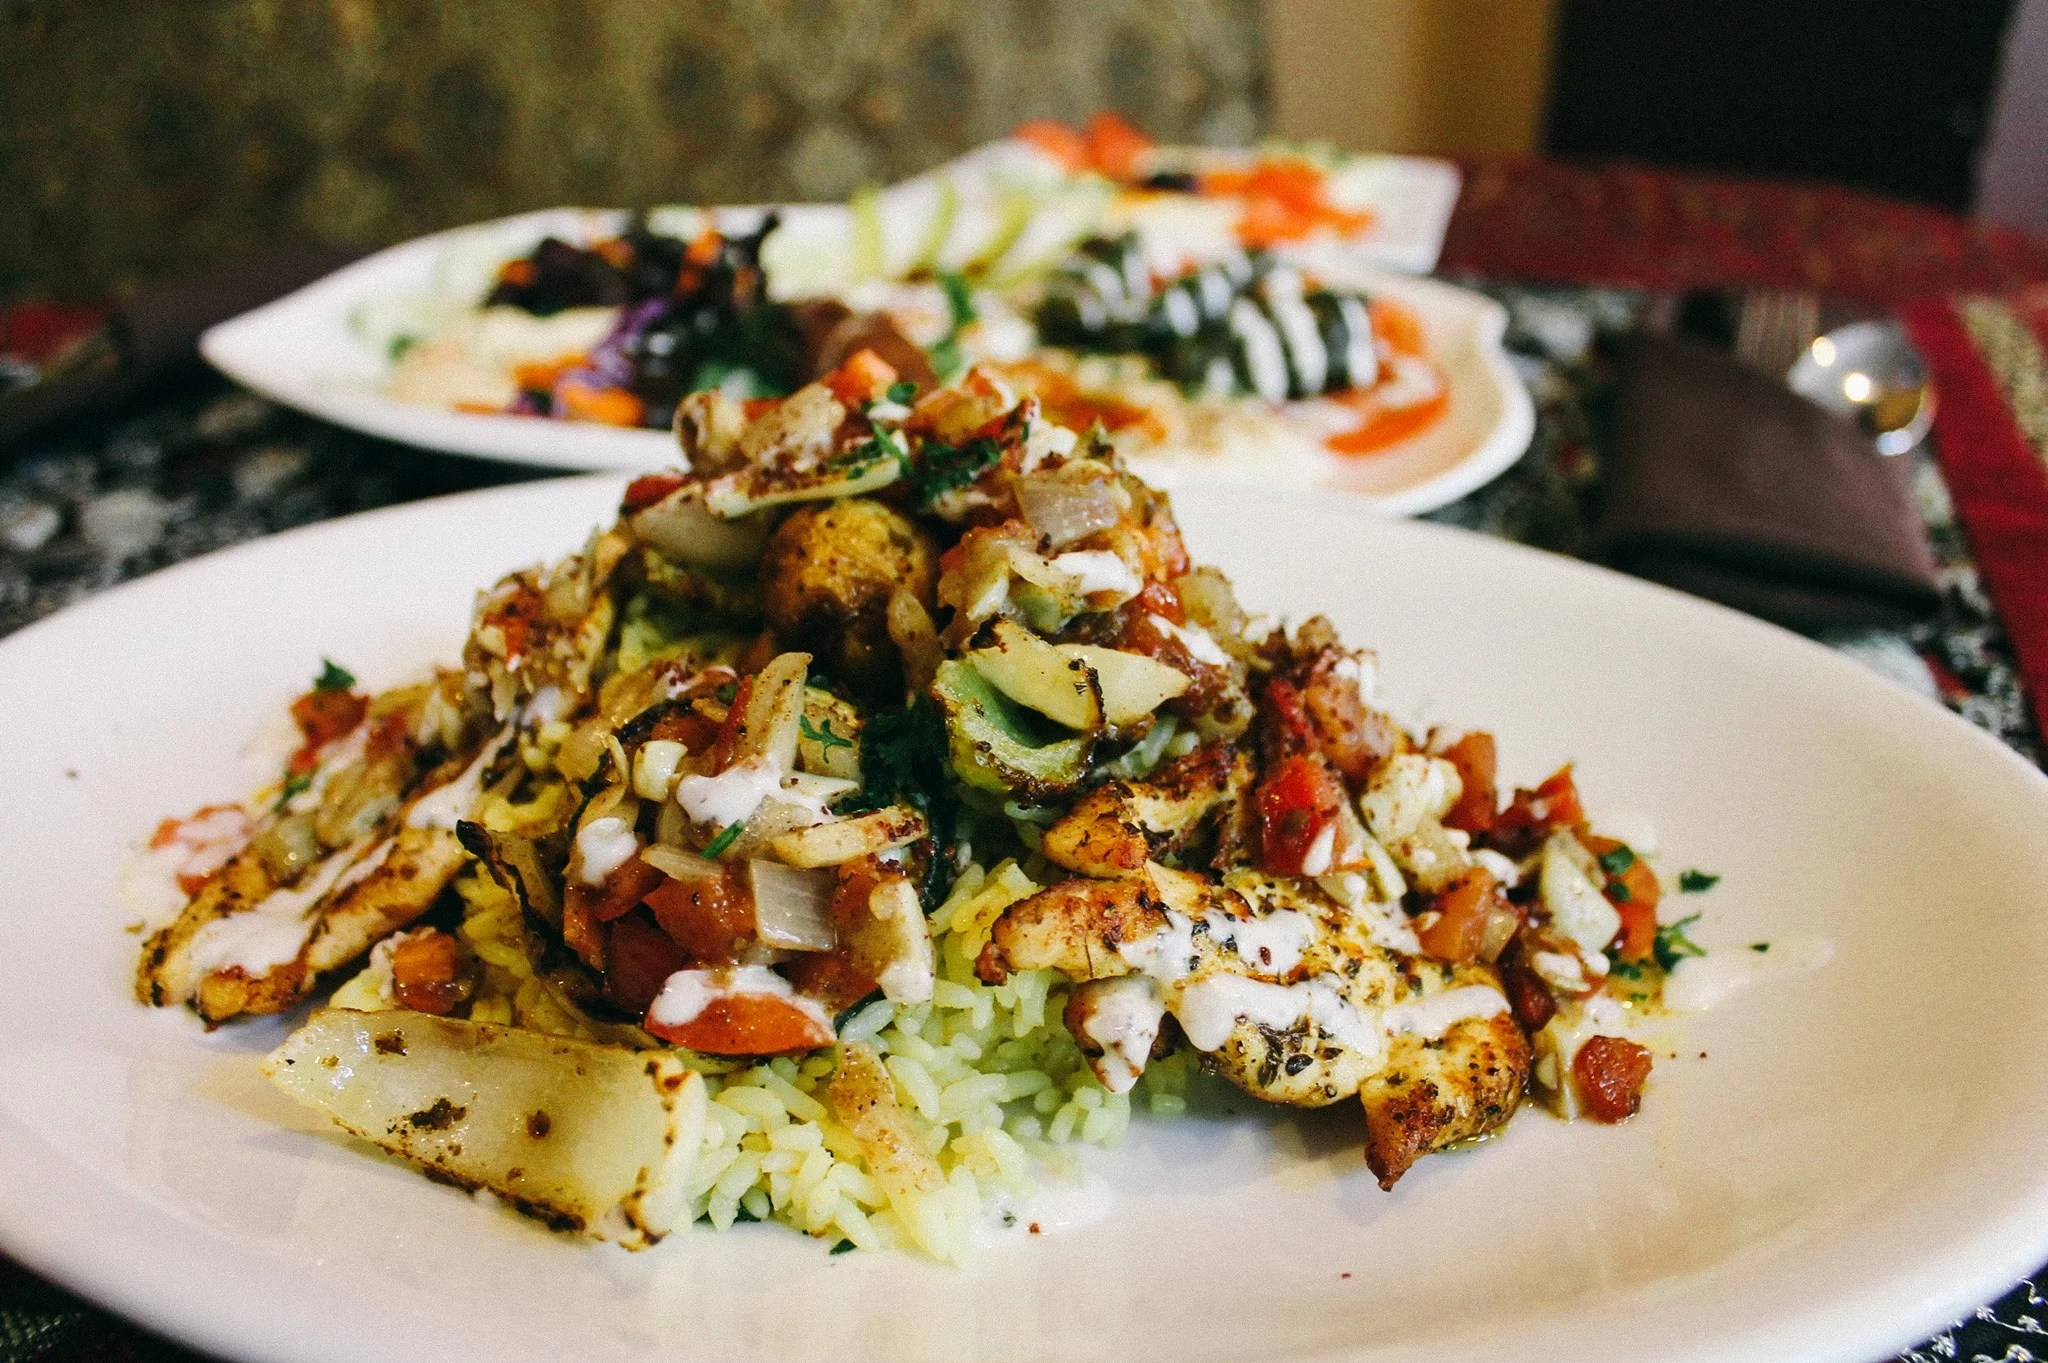 Cuisine Royale Guide Specialty Dishes From Around The World Right Here In Seattle